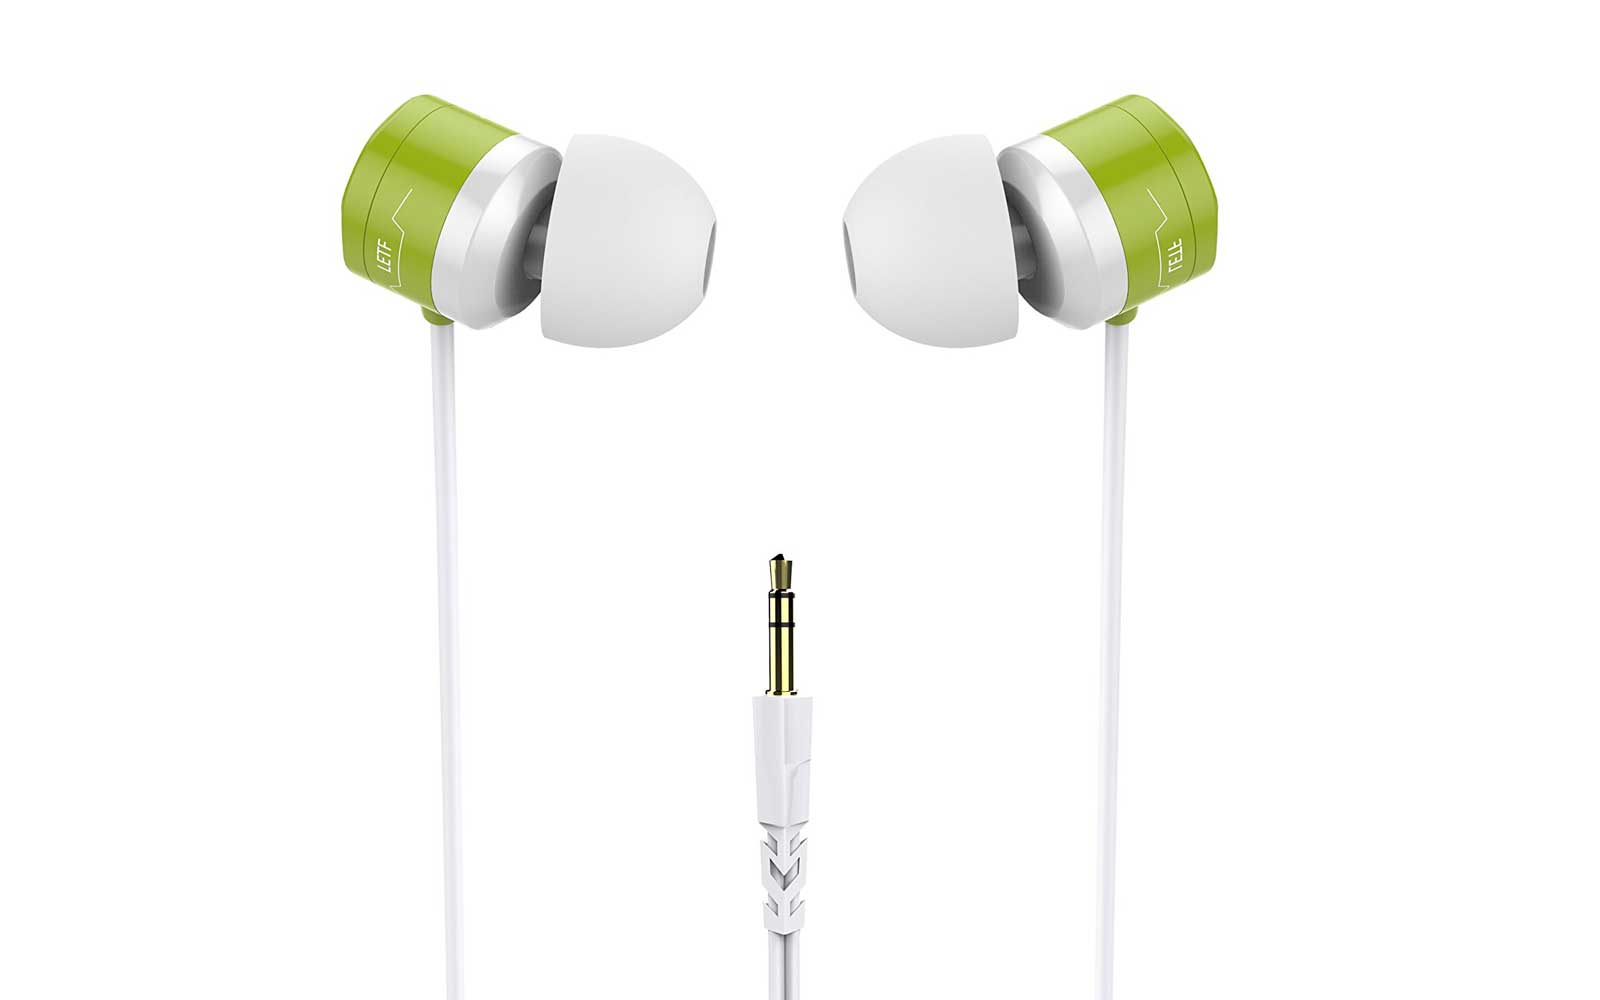 USTEK In-Ear Earphones